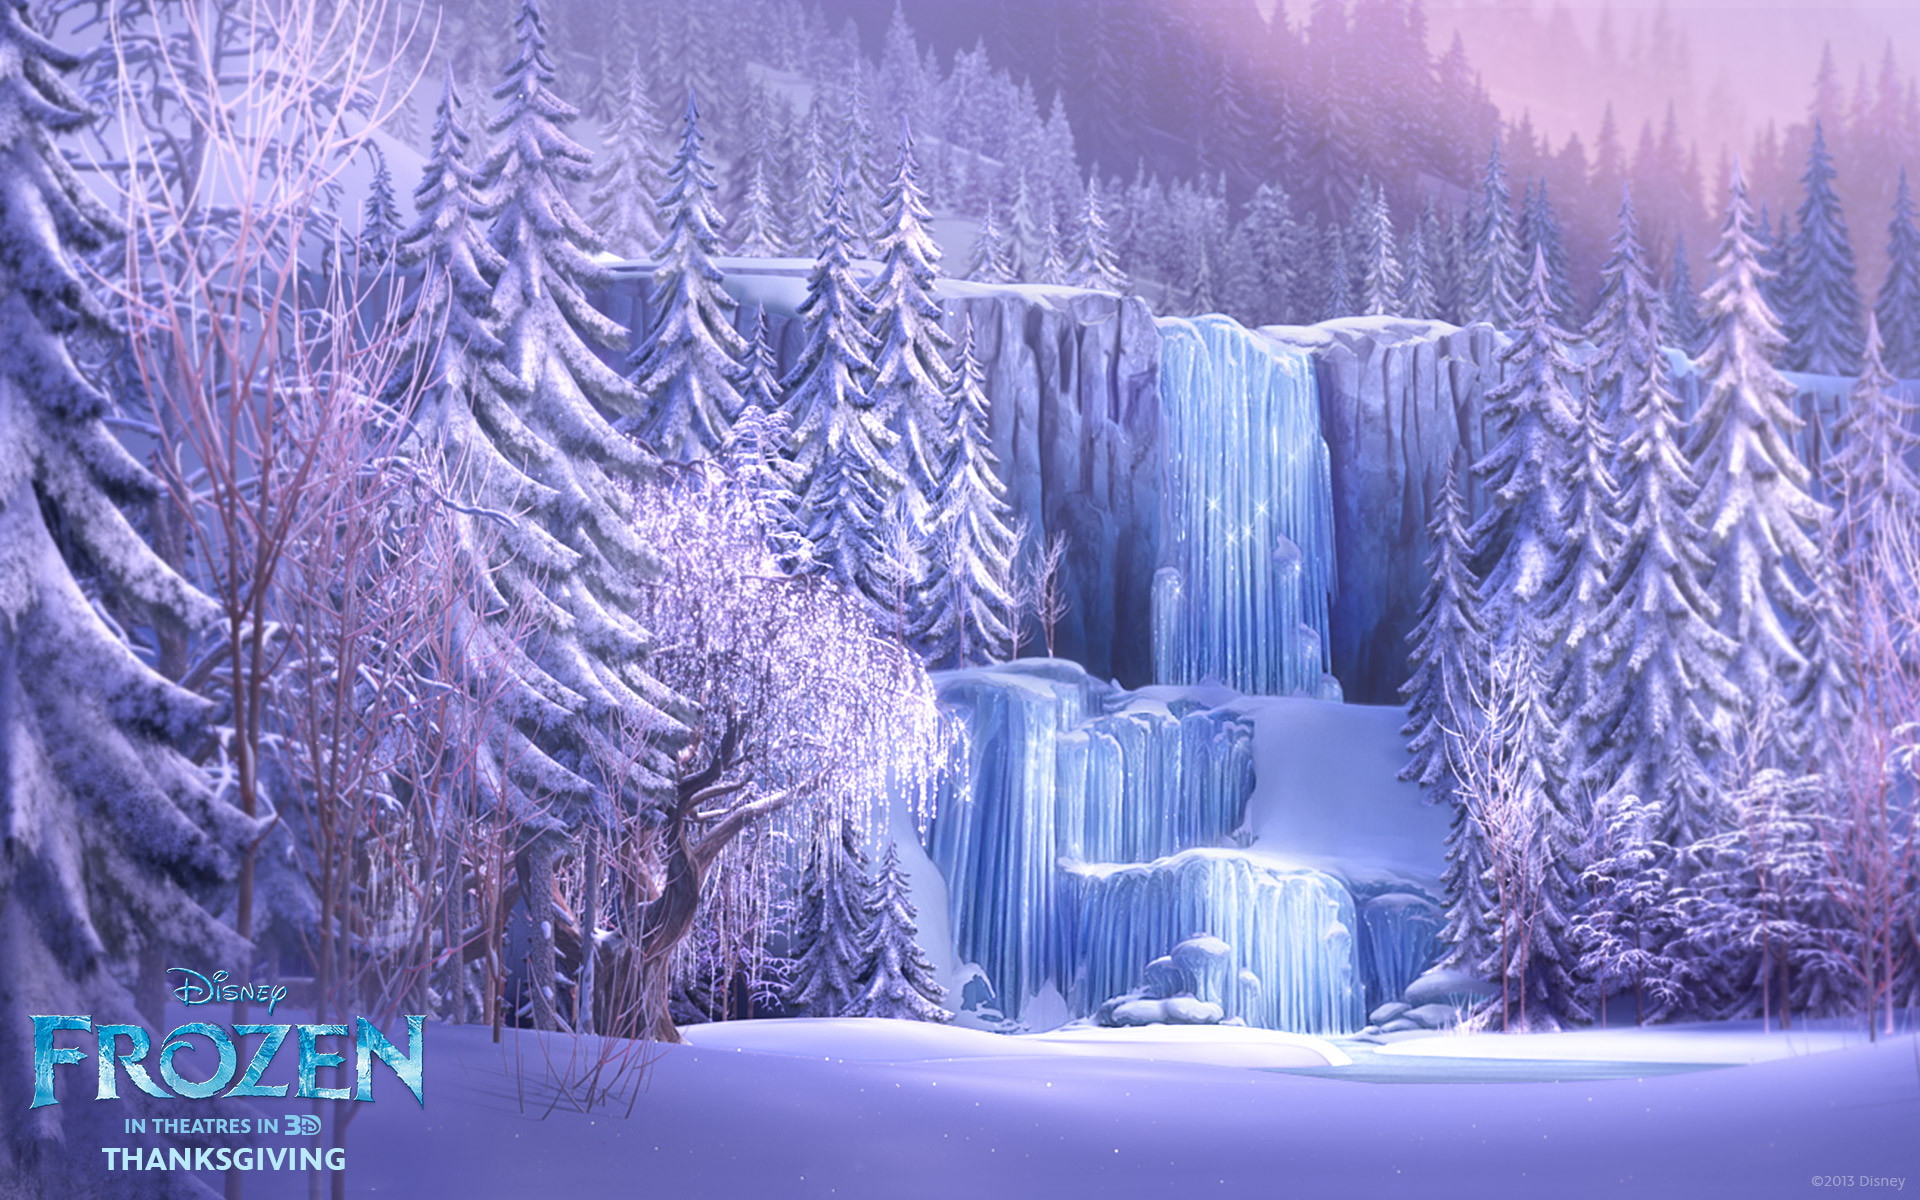 Frozen images Frozen Wallpapers HD wallpaper and background photos     Frozen images Frozen Wallpapers HD wallpaper and background photos